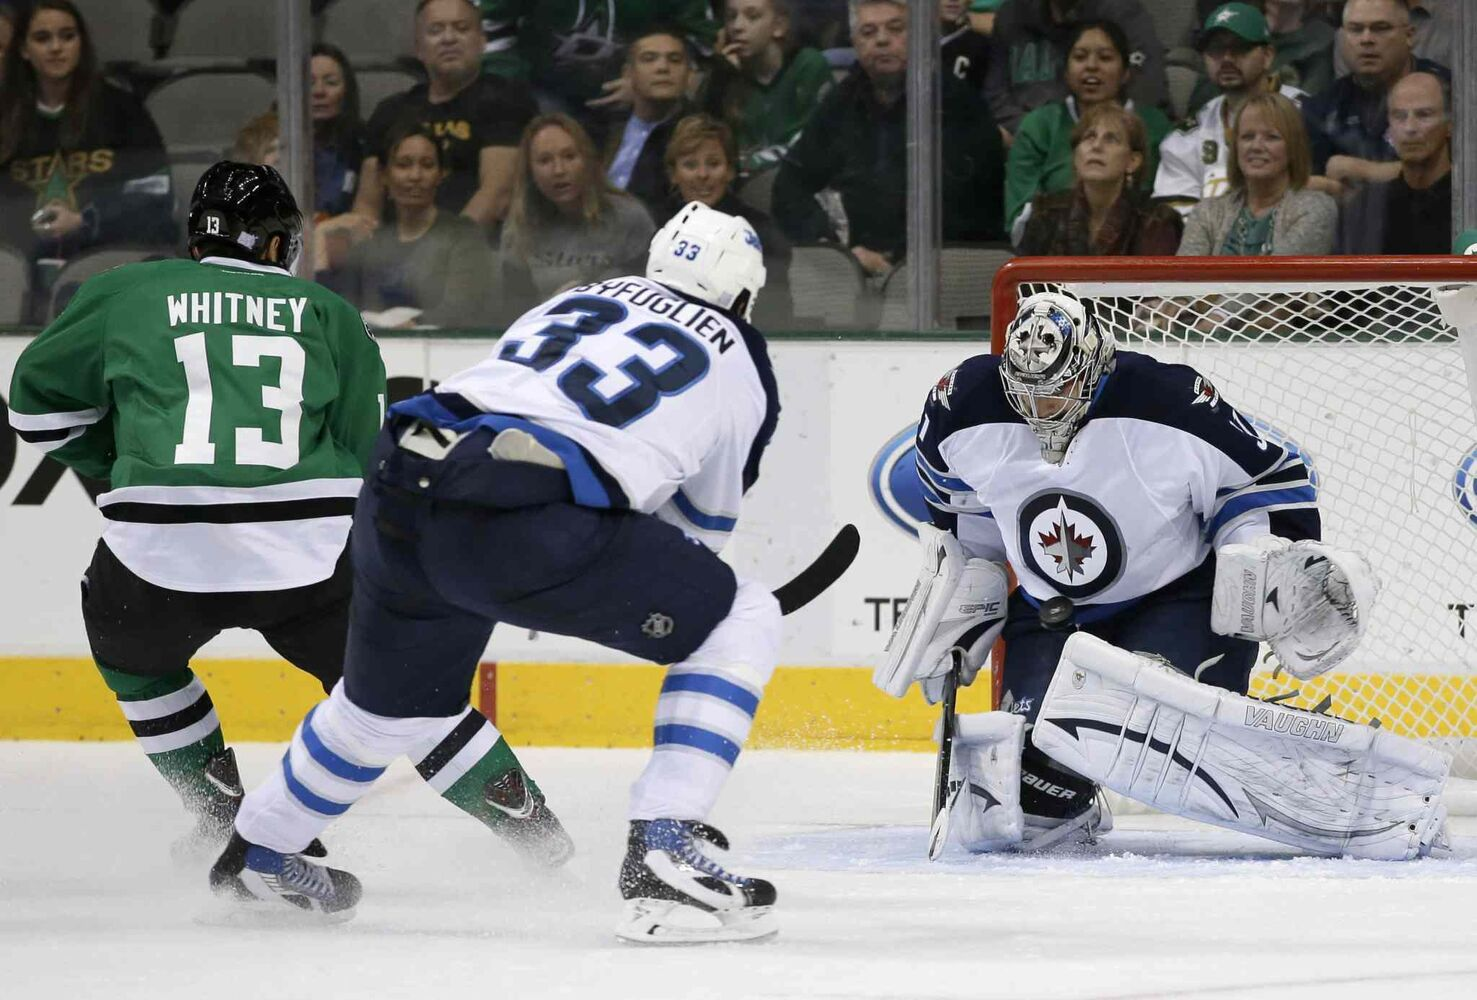 Winnipeg Jets goalie Ondrej Pavelec (right) blocks a shot from Dallas Stars winger Ray Whitney as Jets defenceman Dustin Byfuglien backchecks during the first period Saturday night's game in Dallas. (Tony Gutierrez / The Associated Press)